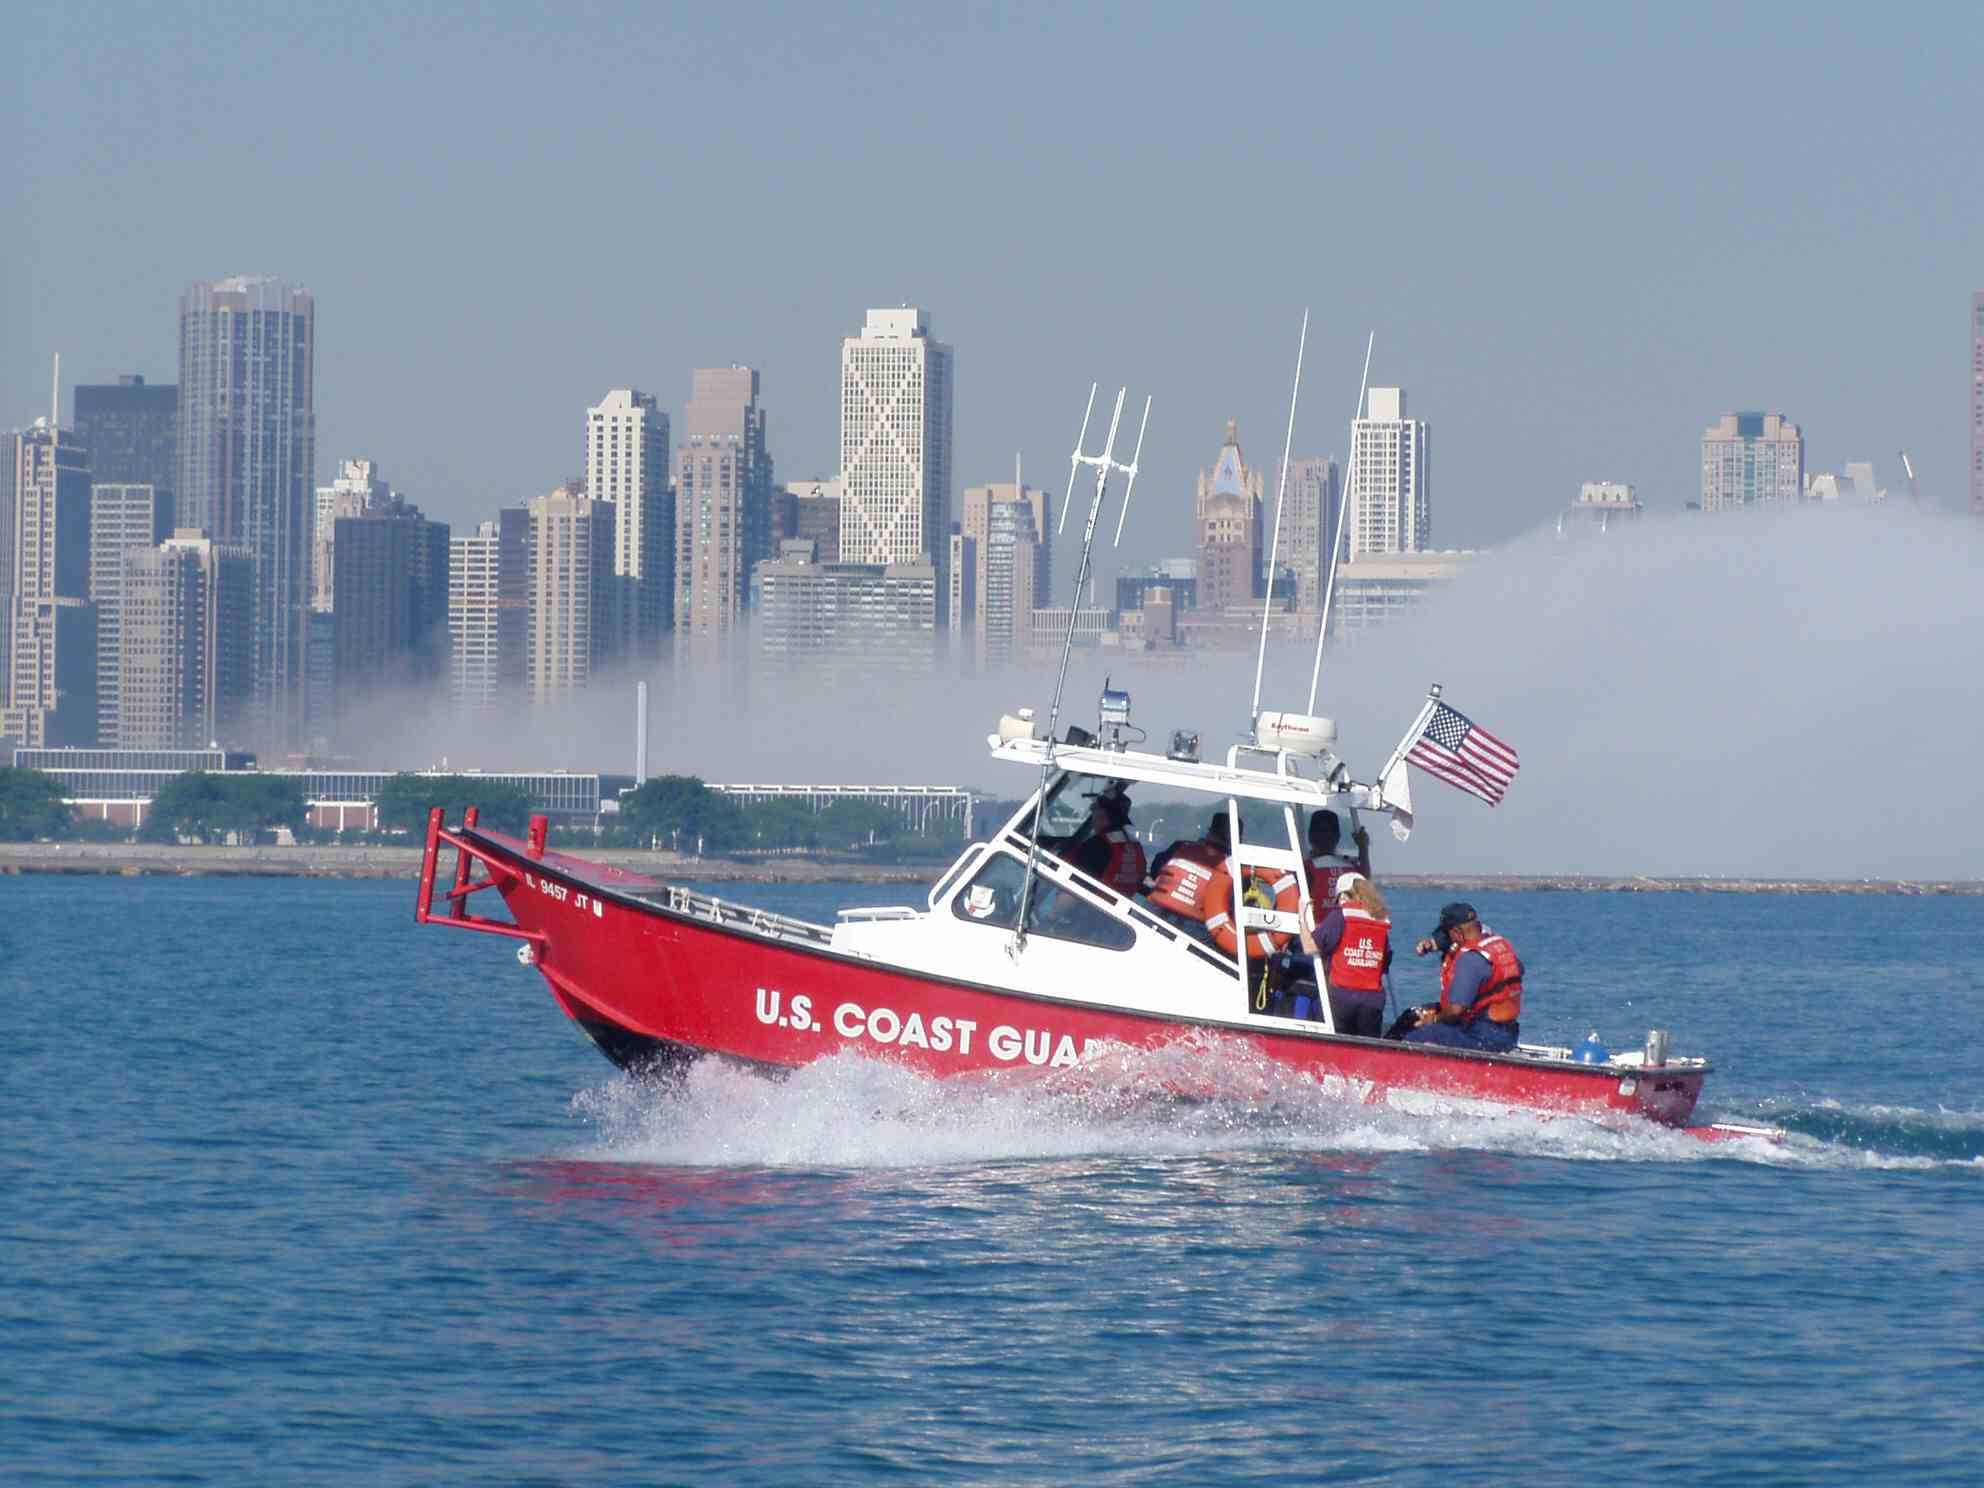 CG Auxiliary patrol boat with Chicago skyline